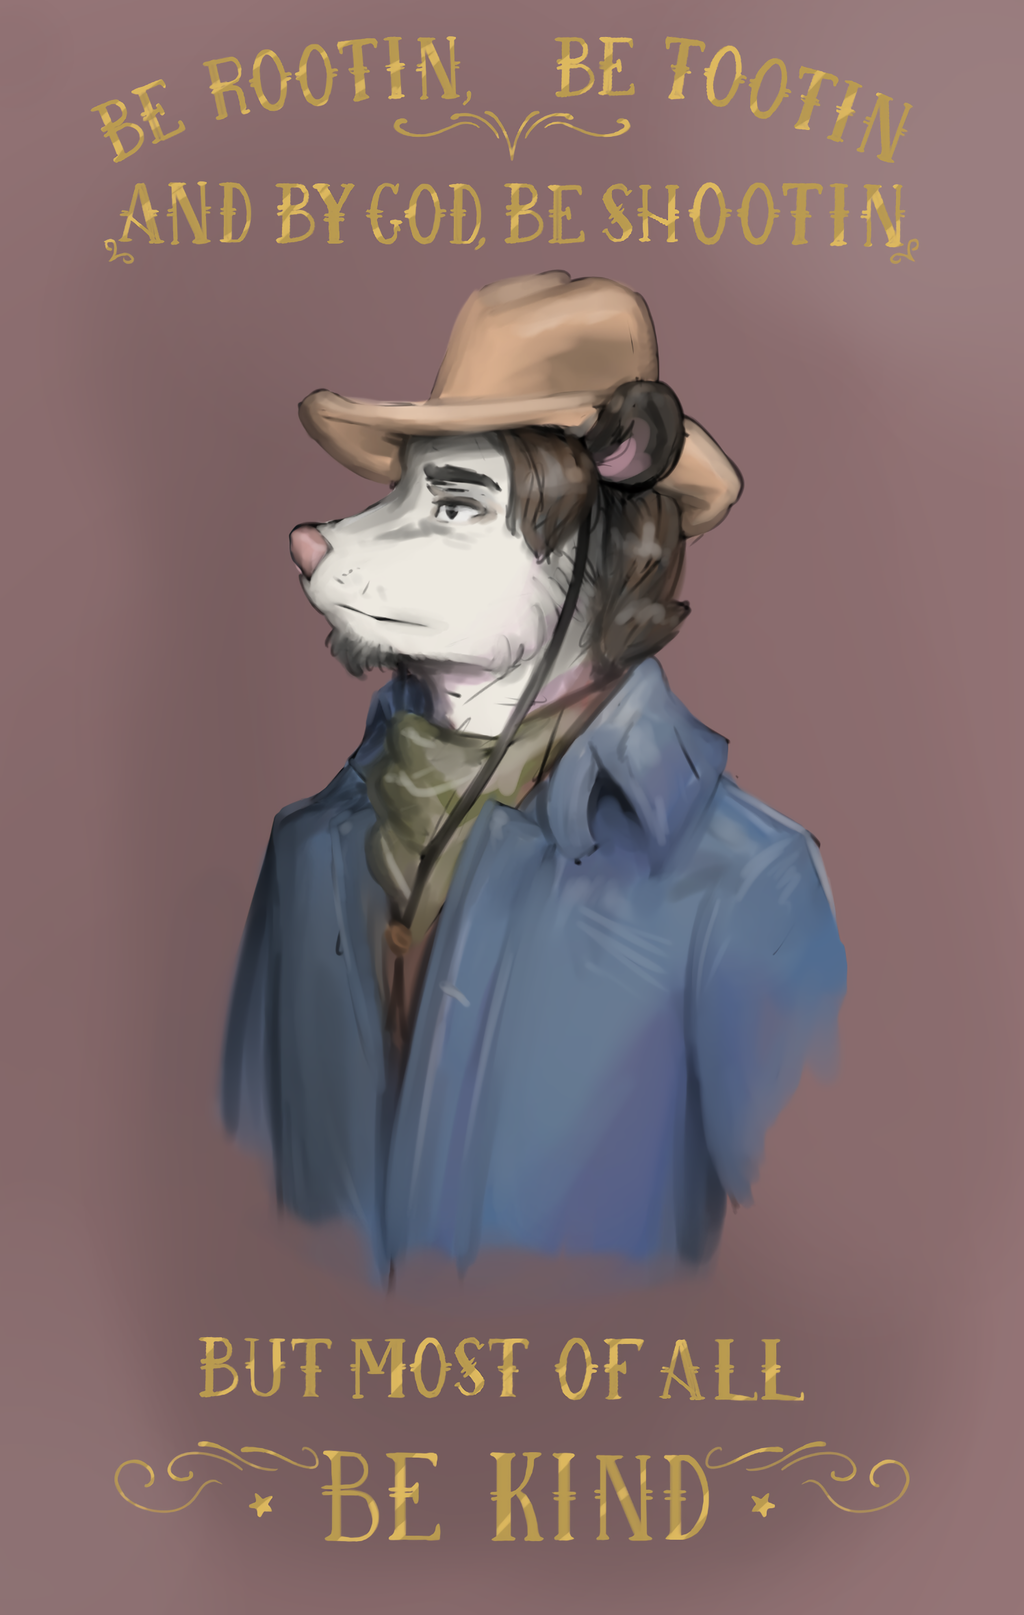 Most recent image: howdy